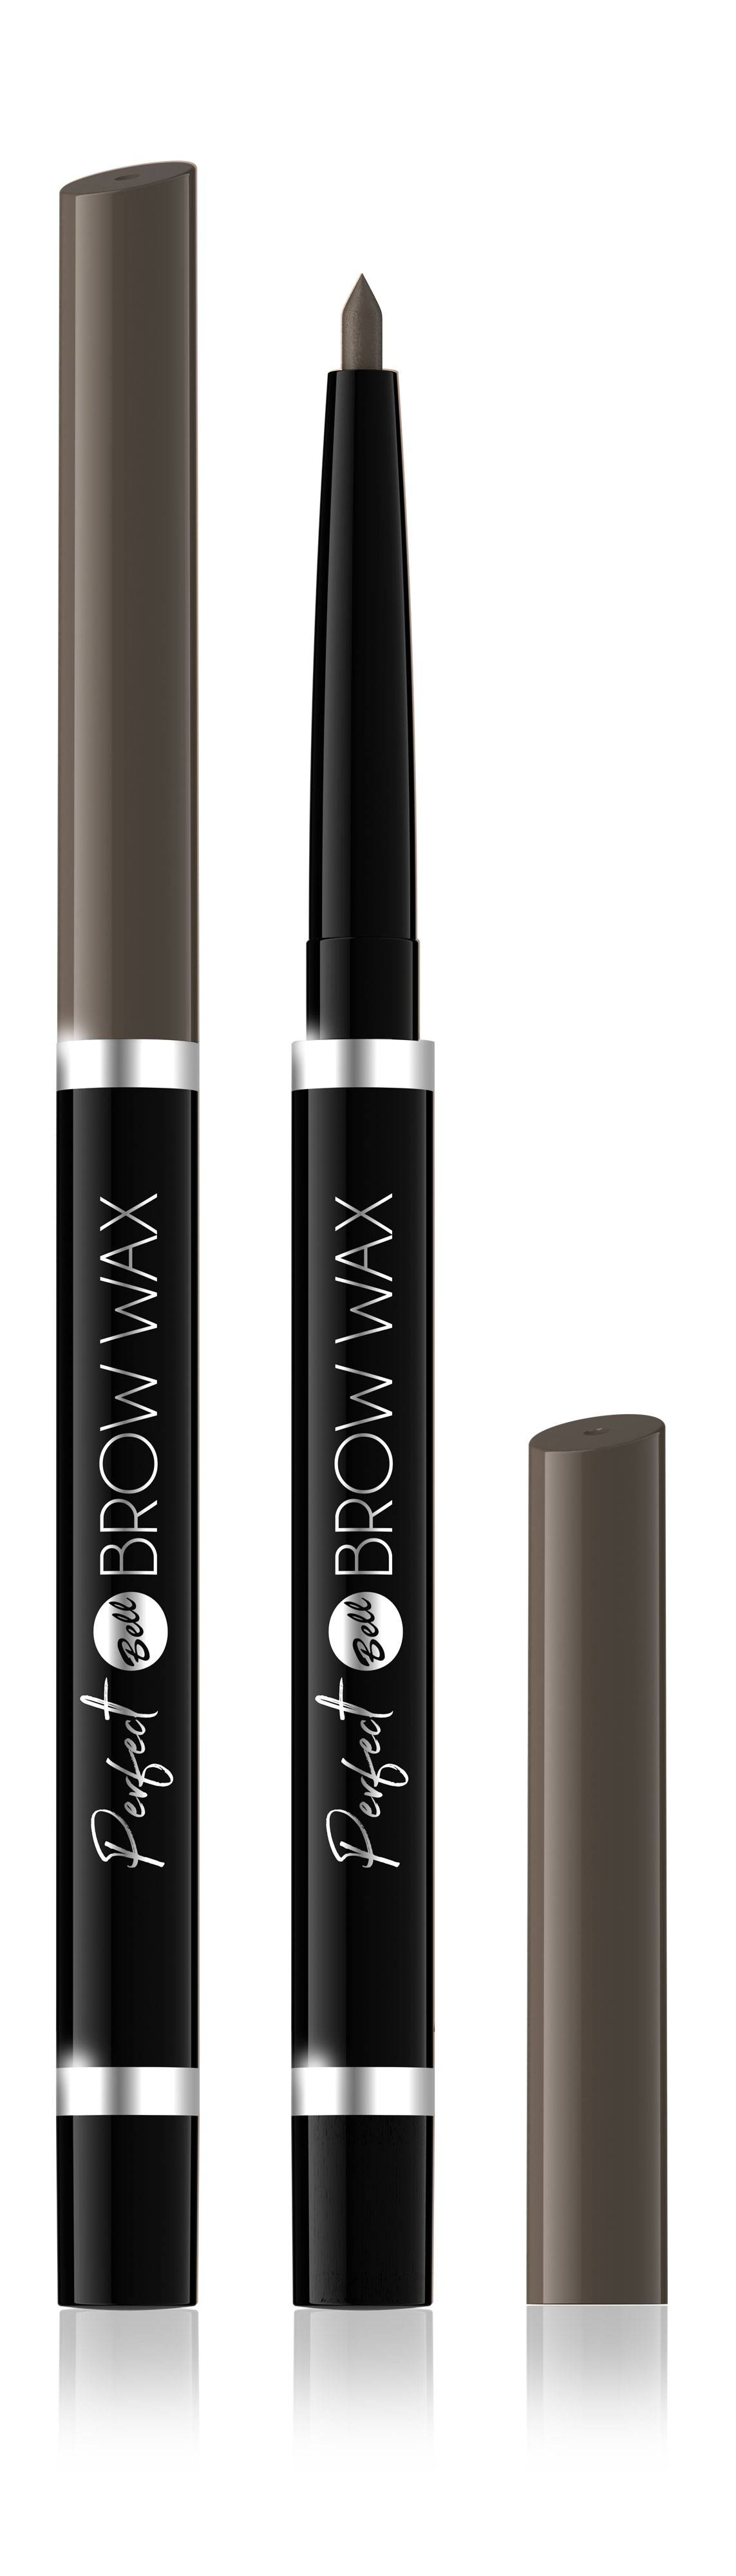 Bell Crayon à sourcils Perfect Brow Wax - 01 - Blond léger